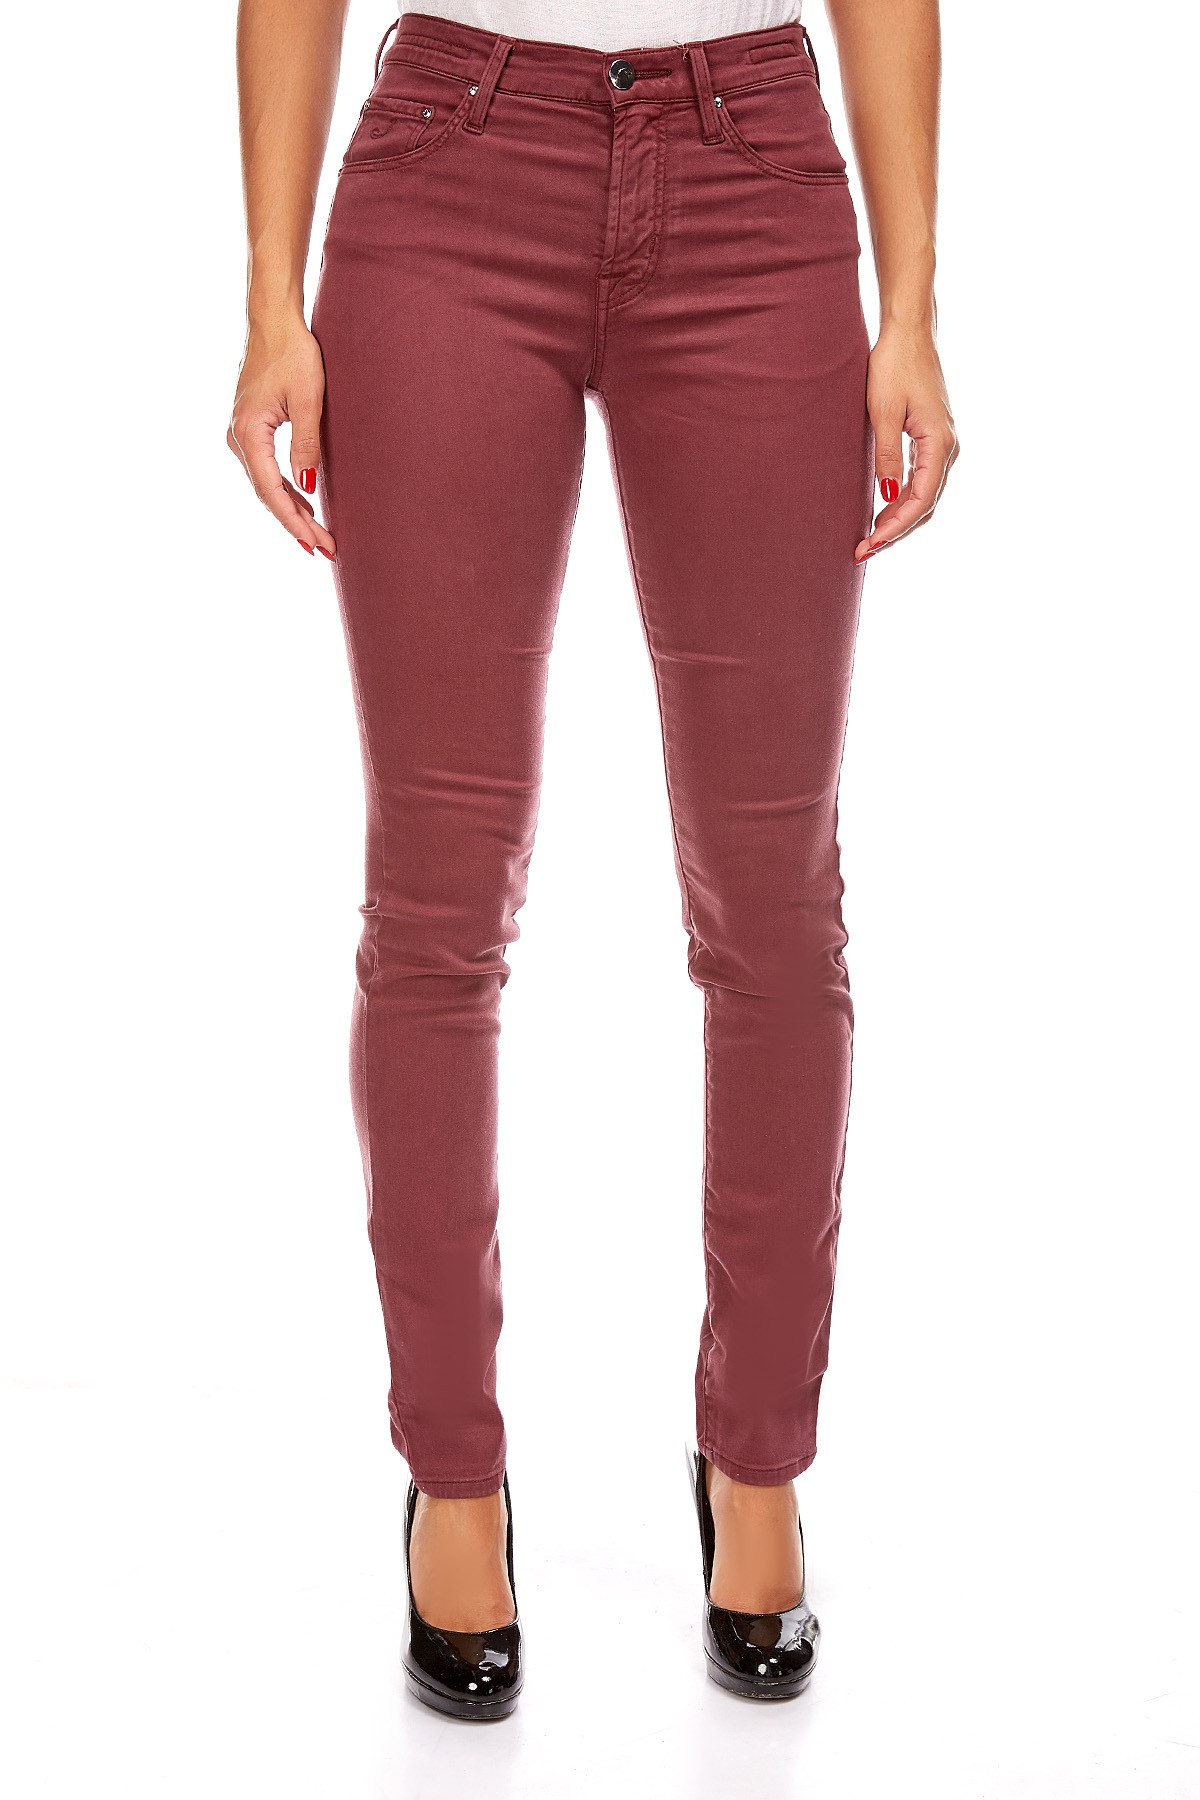 Bordeaux 174 Femme Cohen 00227 Jeans S660 Jacob Slim Kimberly 00 € EDI9eW2HYb